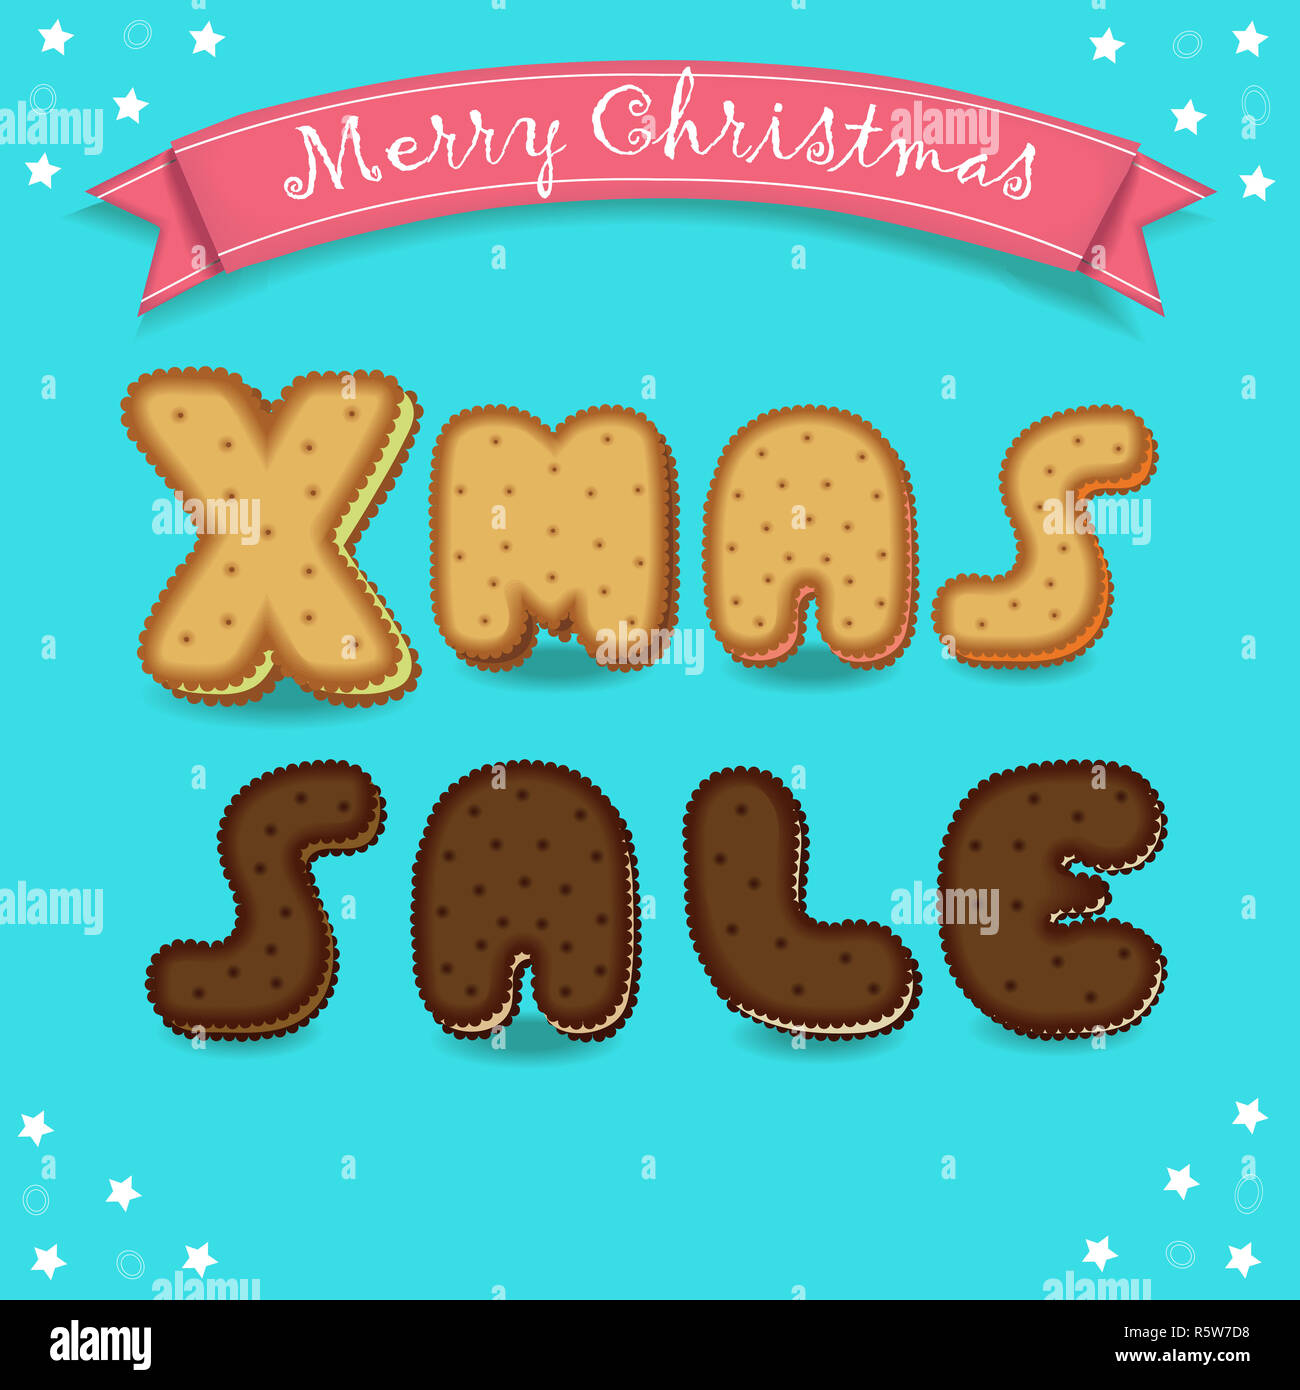 Xmas Sale Merry Christmas Cookies Font Stock Photo 227362724 Alamy